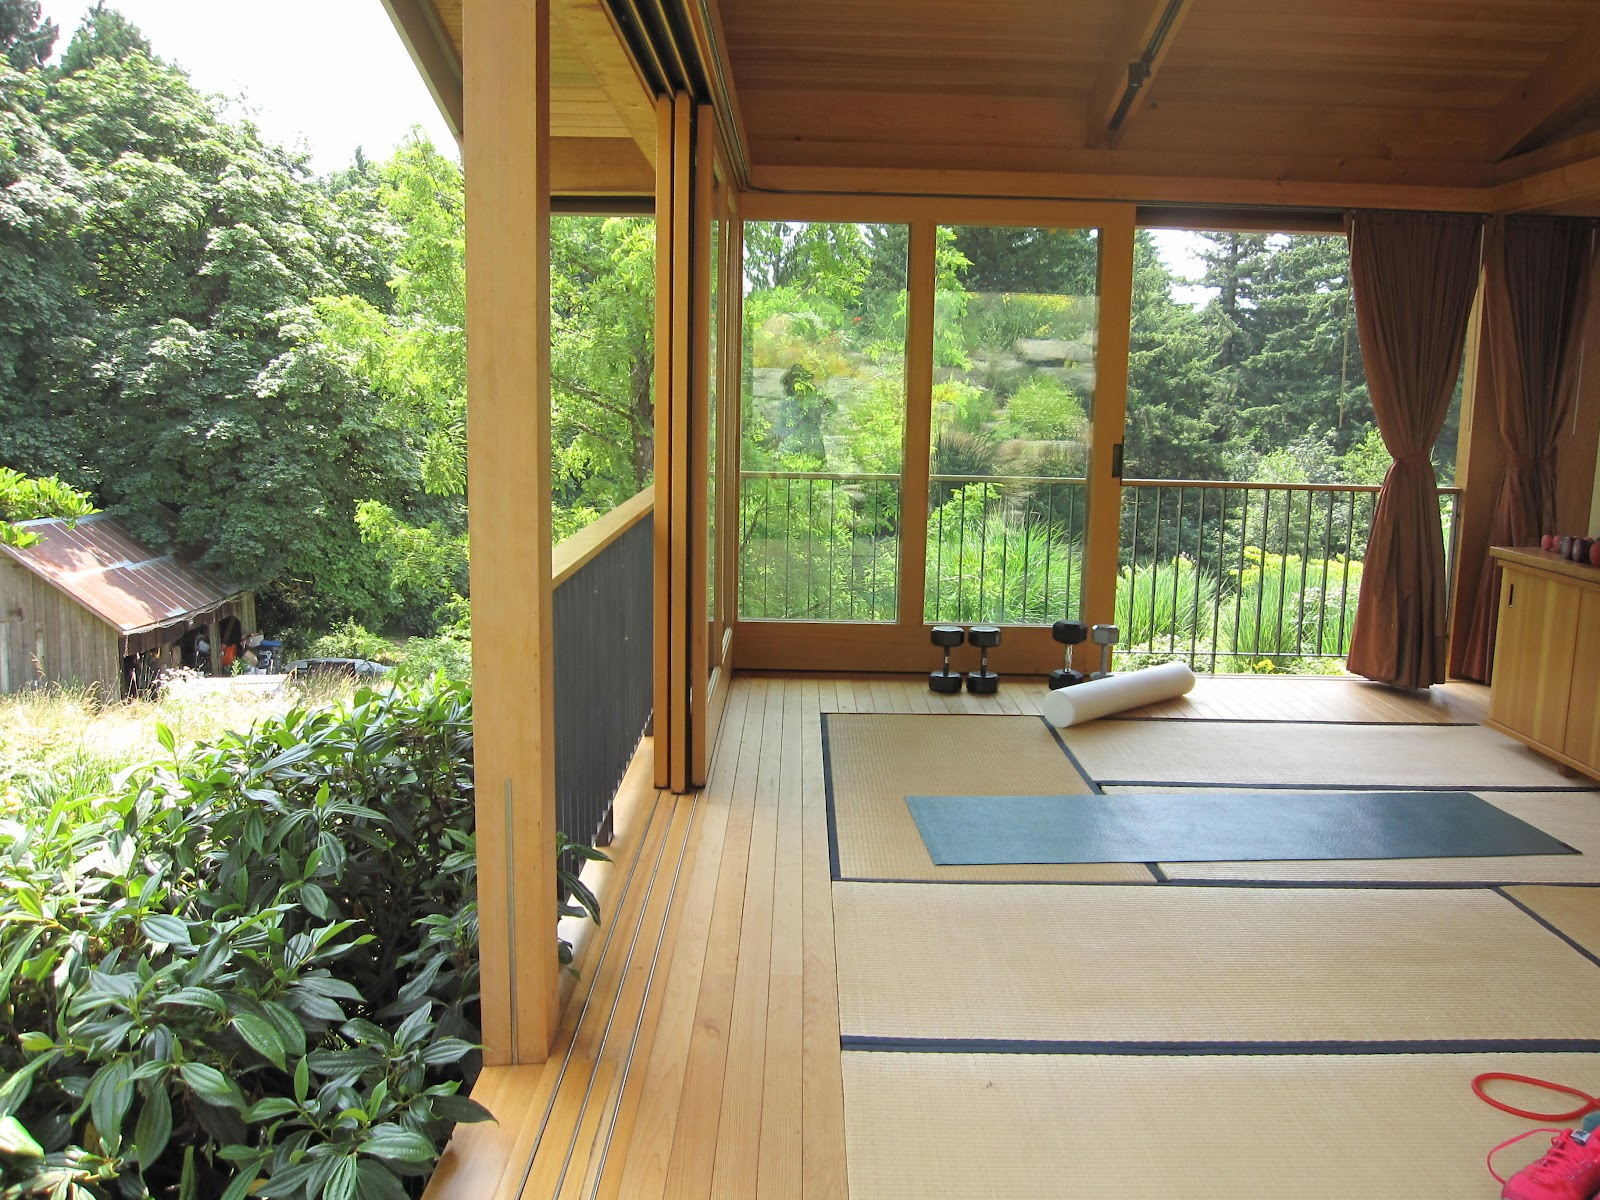 Stunning Home Yoga Studio Design Ideas Photos - harmonyfarms.us ...